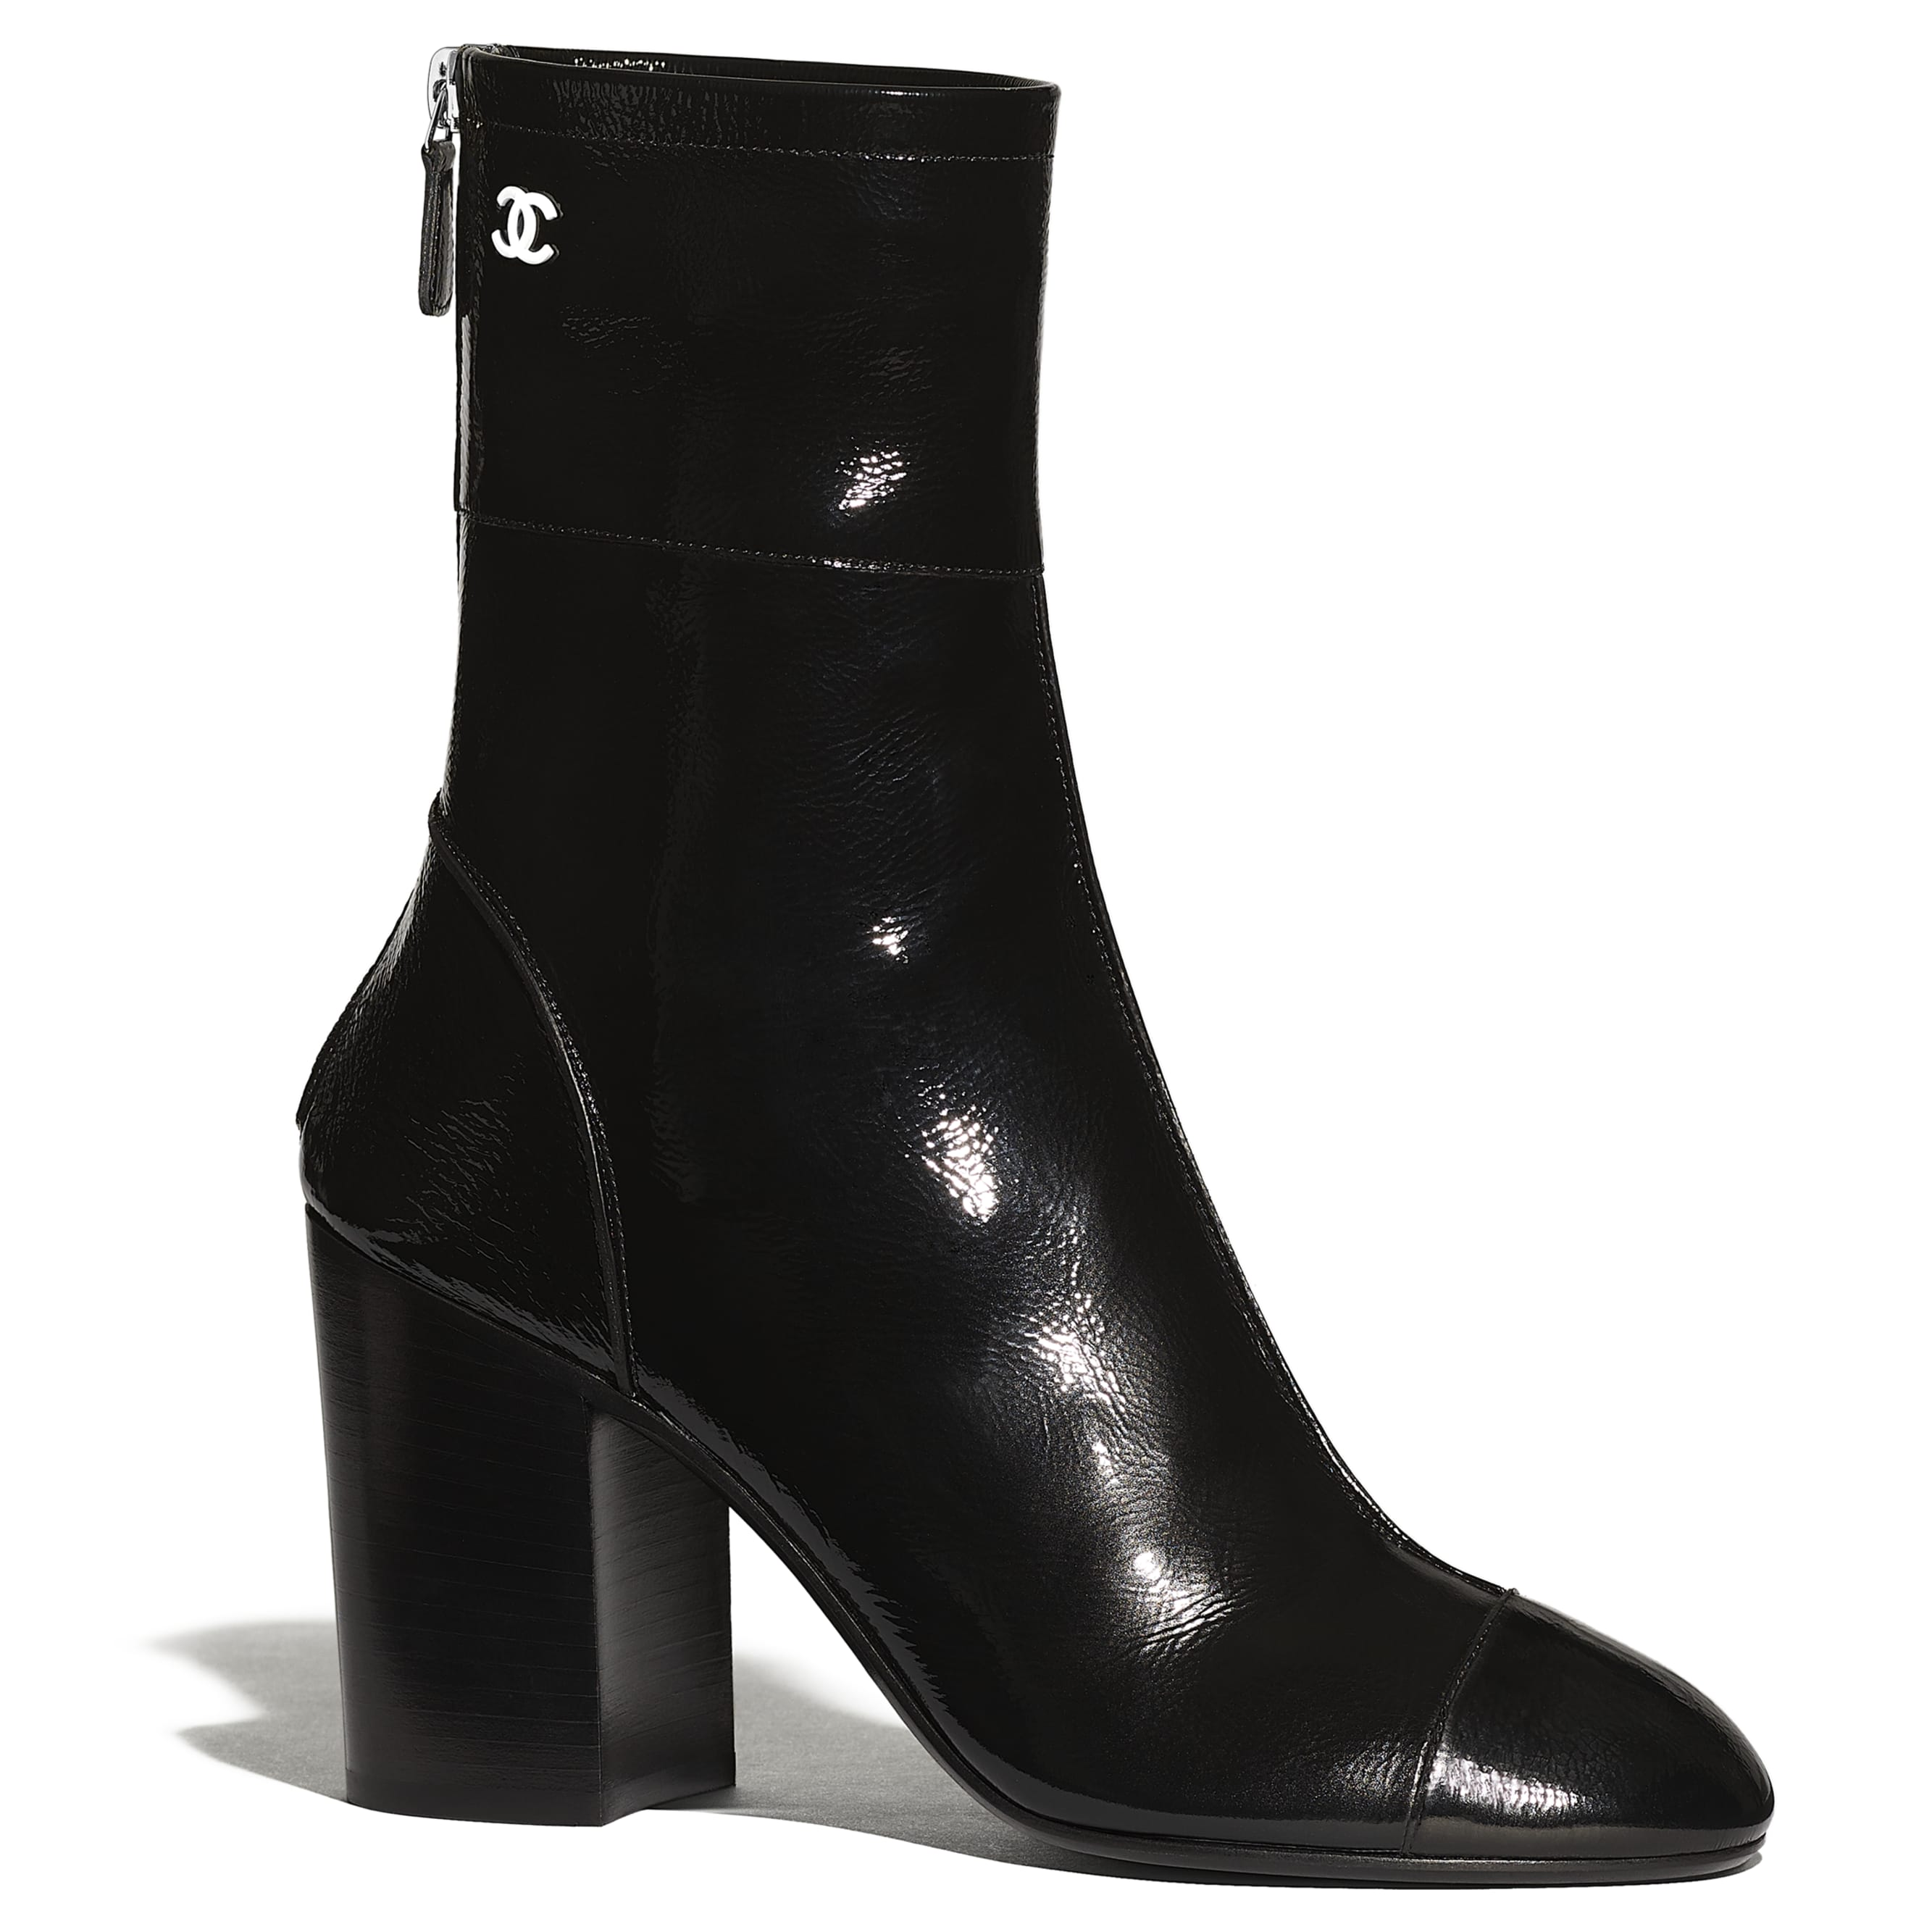 Ankle Boots - Black - Shiny Crumpled Calfskin - CHANEL - Default view - see standard sized version